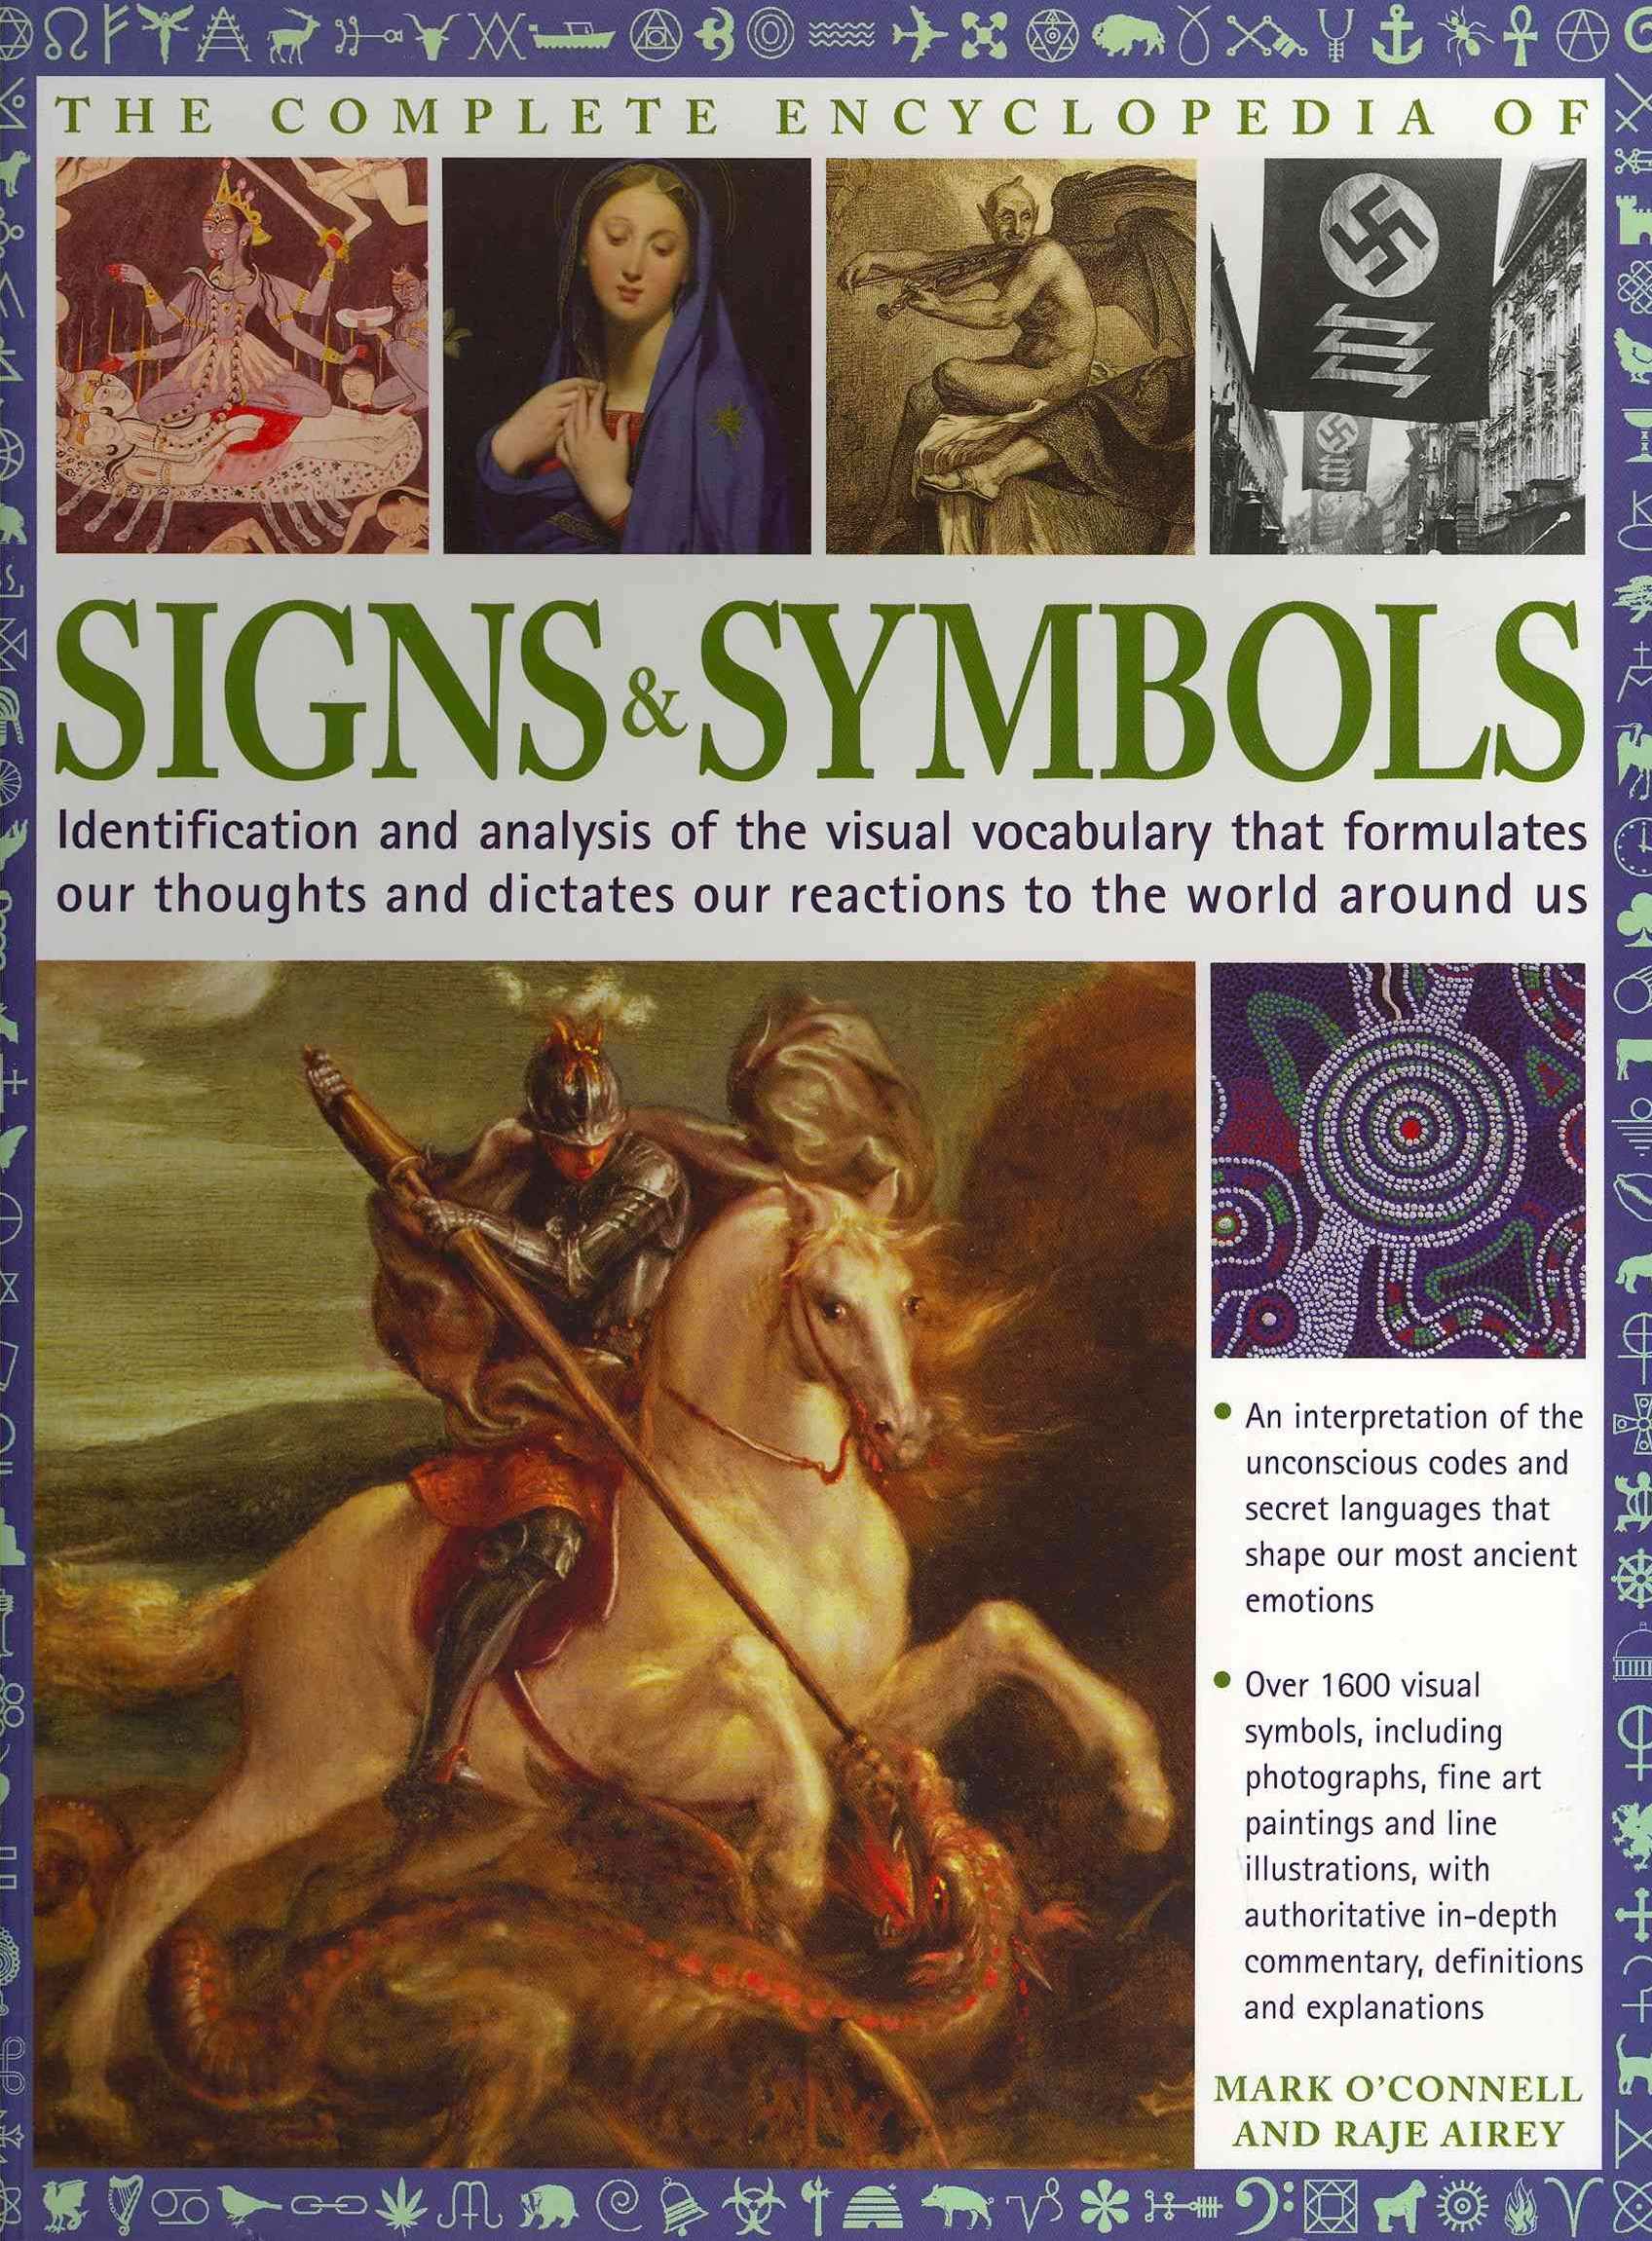 Complete Encyclopedia of Signs & Symbols